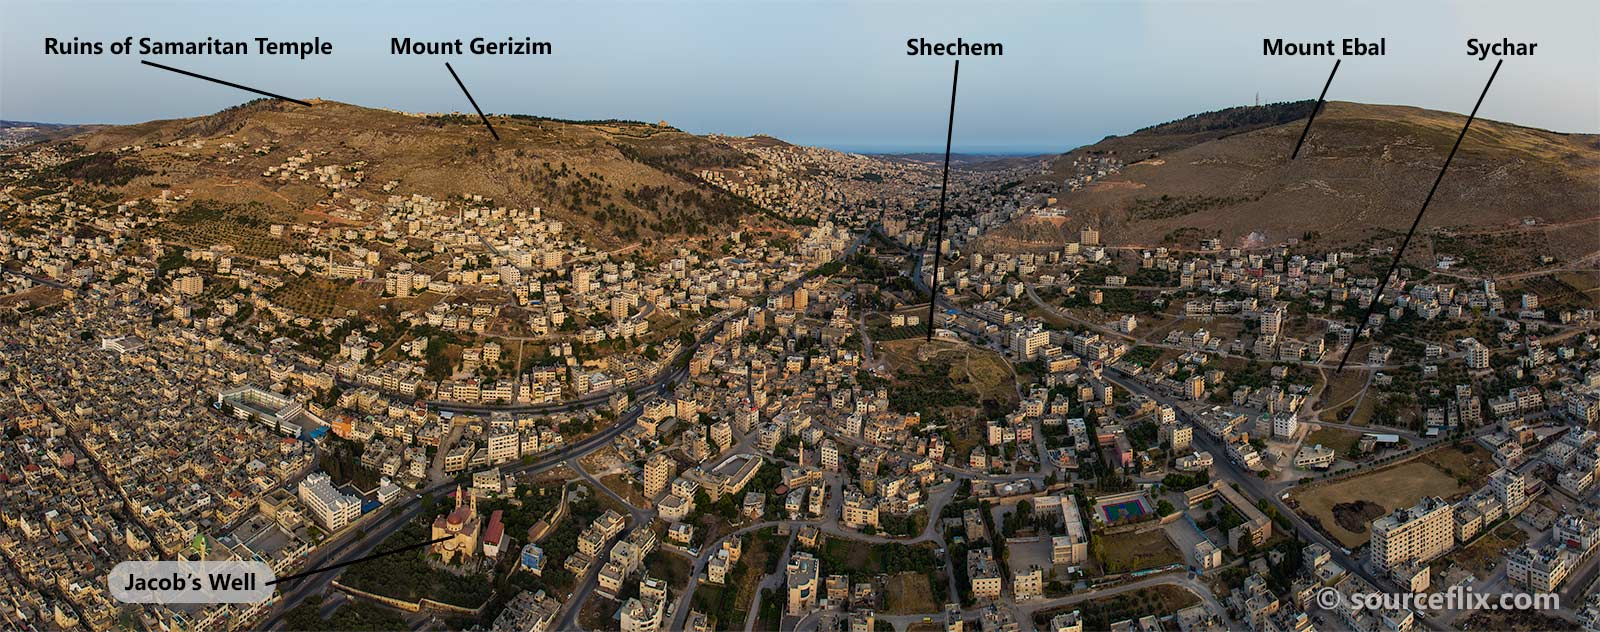 Shechem-Pano-with-Text-4w-1600x